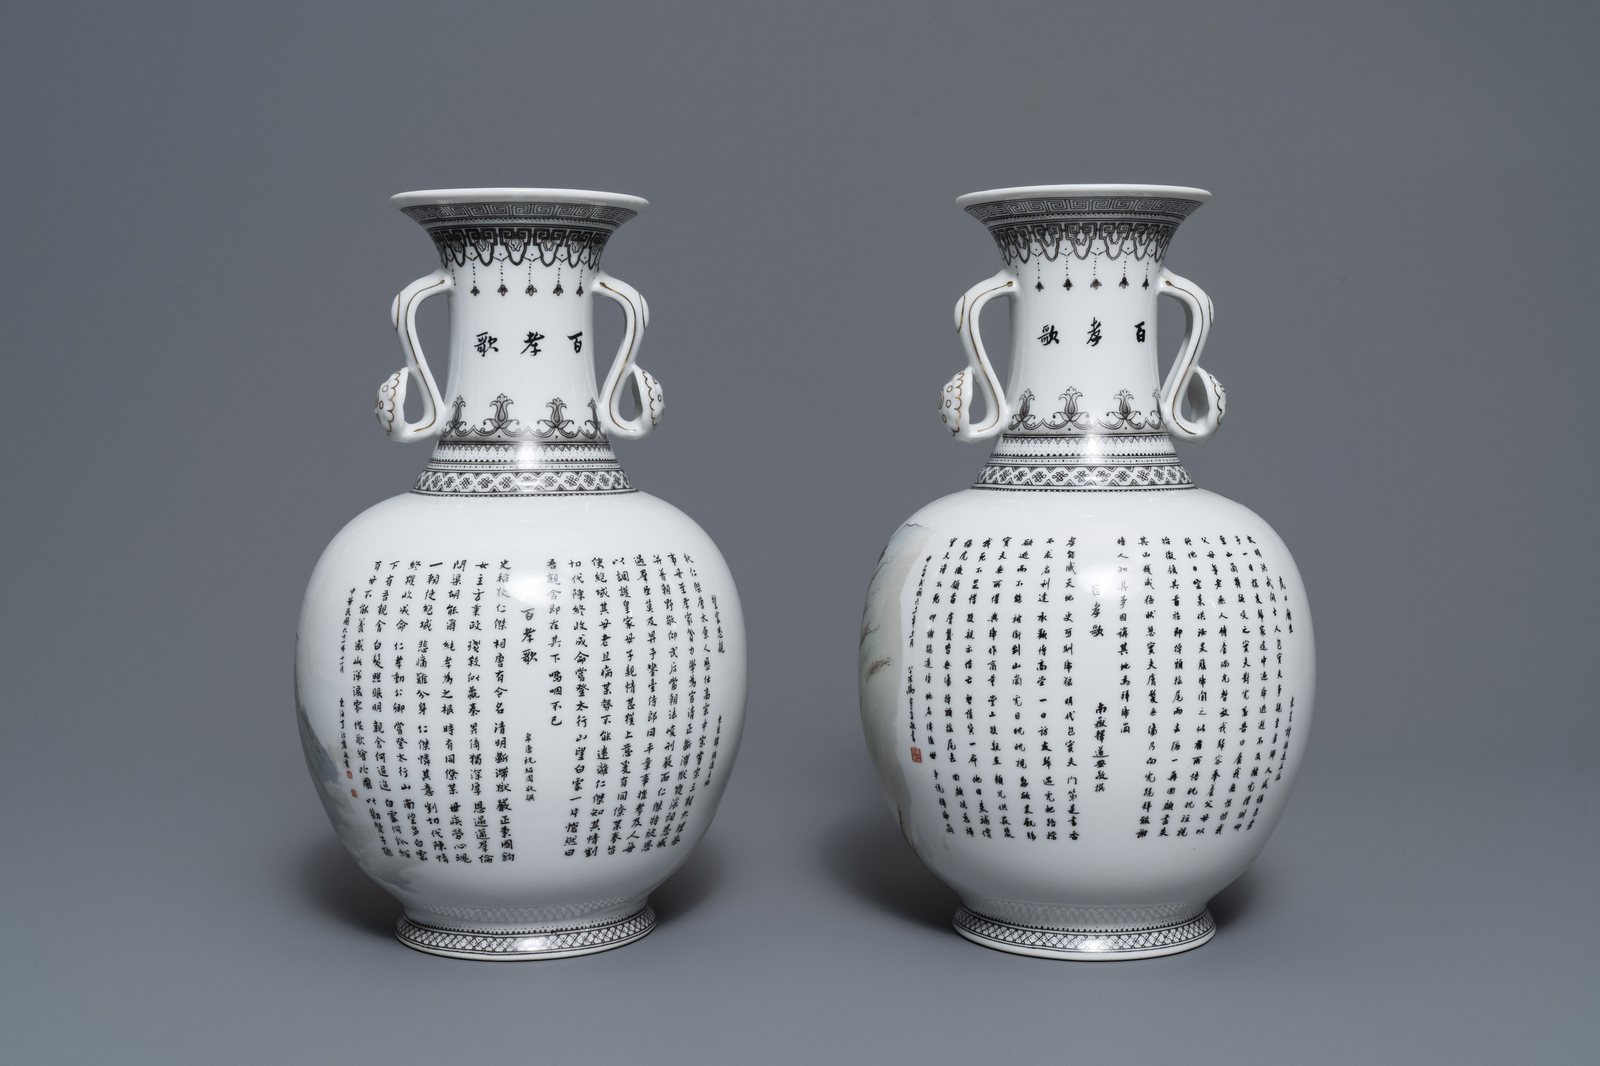 Lot 28 - Two fine Chinese ruyi-handled vases, 2nd half 20th C.